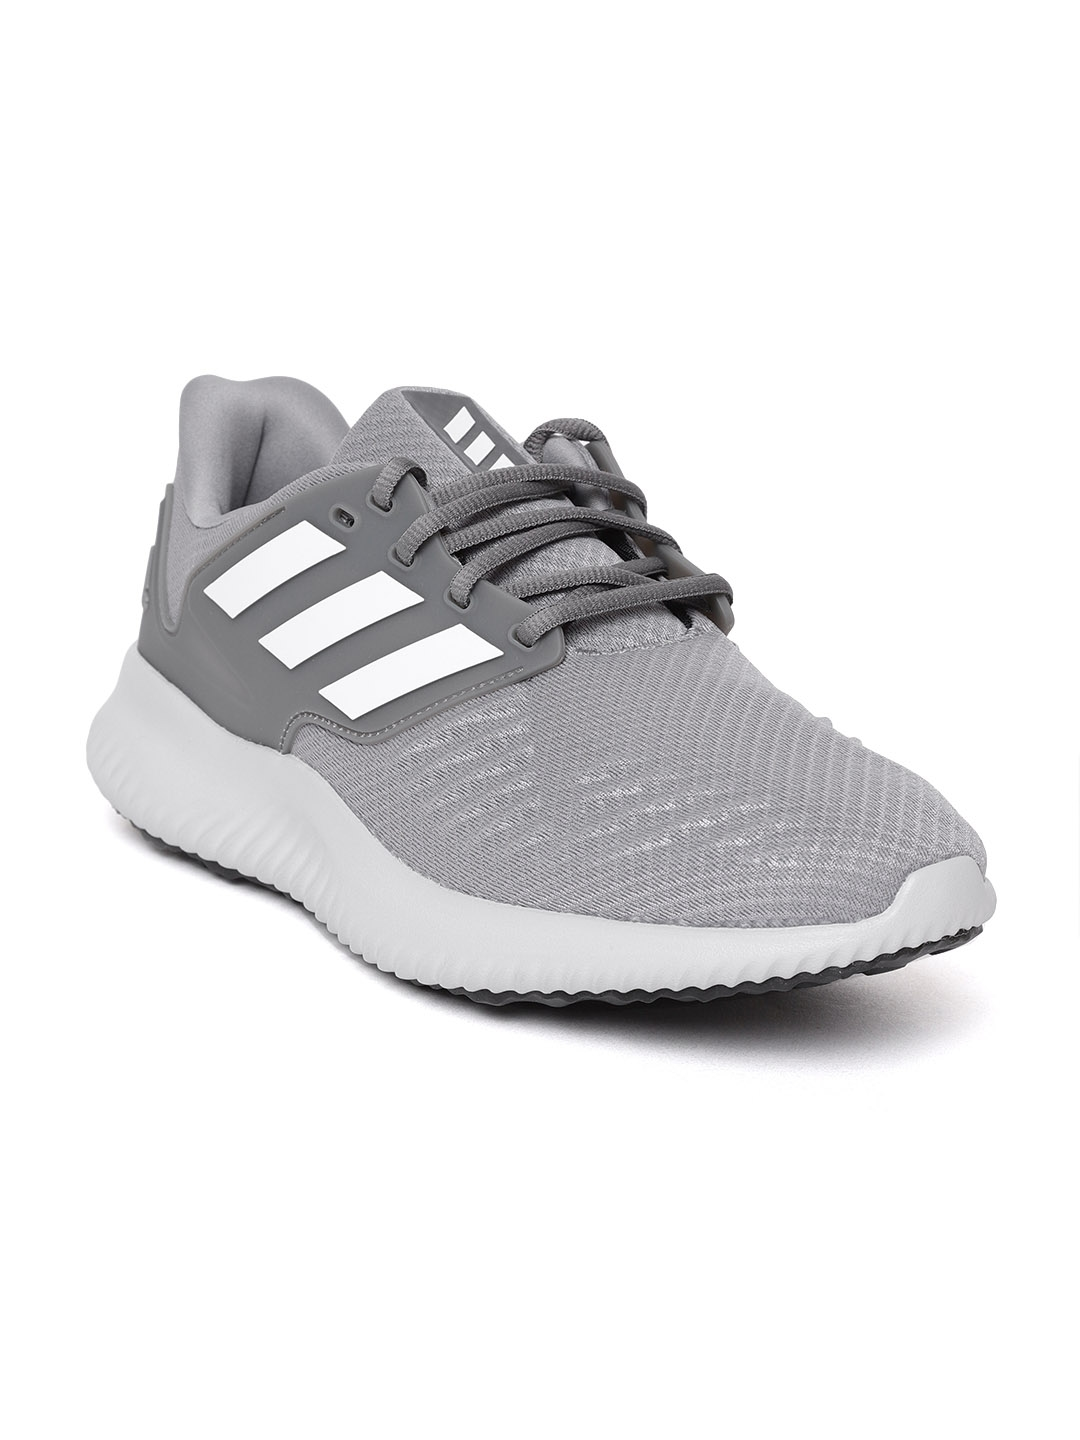 b69bb38c7 Buy ADIDAS Men Grey Alphabounce RC 2 Running Shoes - Sports Shoes ...